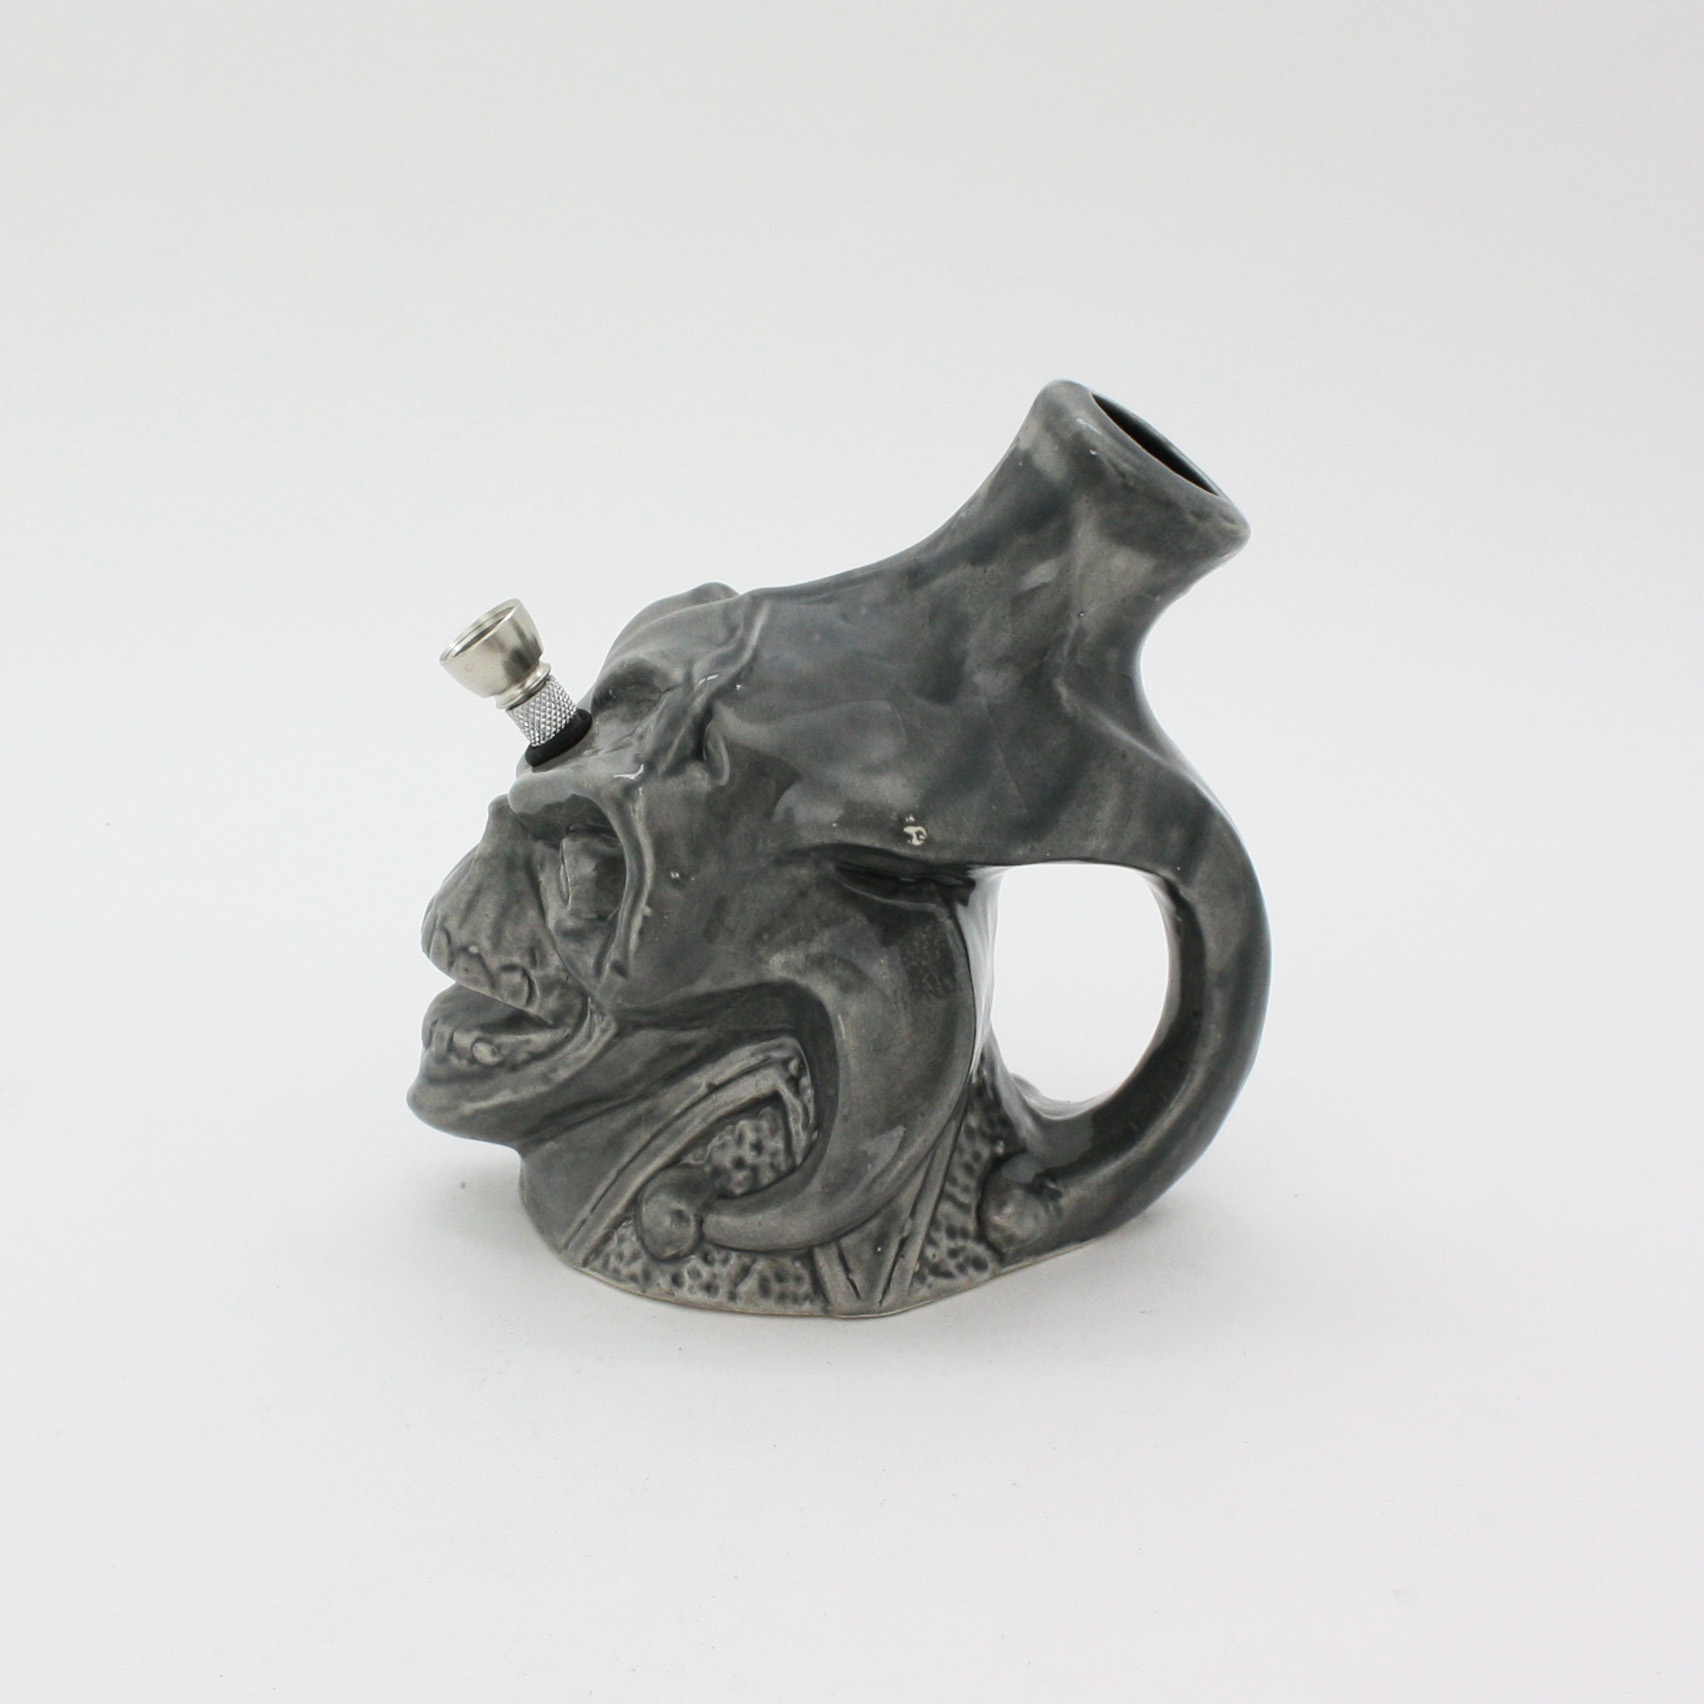 Ceramic Water Pipe Joker Skull Iai Corporation